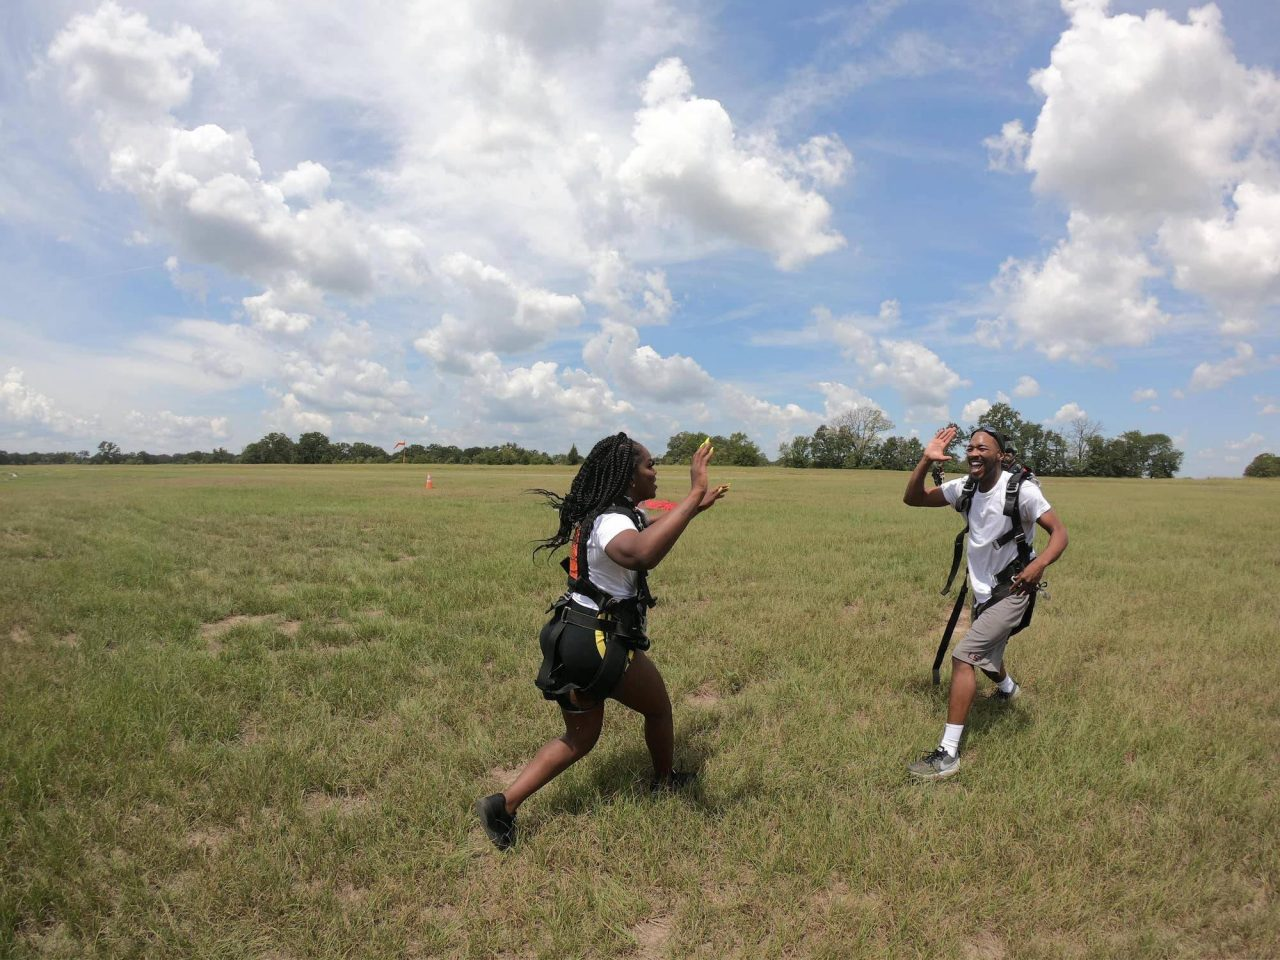 Man and women run towards each other for a high-five after an awesome skydive with the skydiving company